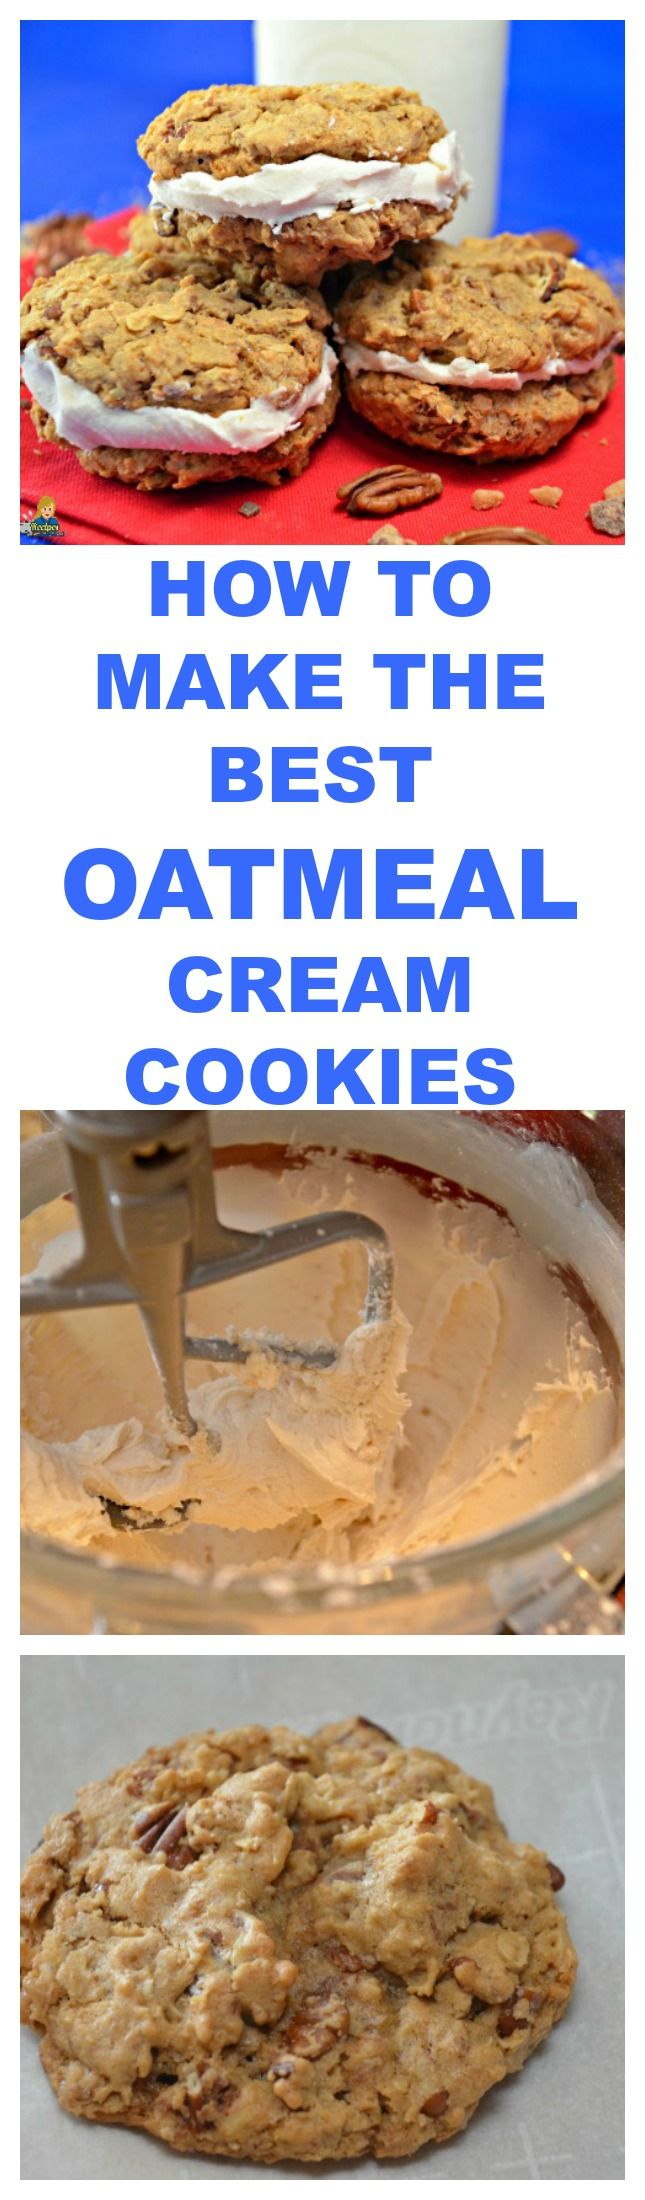 HOW TO MAKE THE BEST OATMEAL CREAM COOKIES